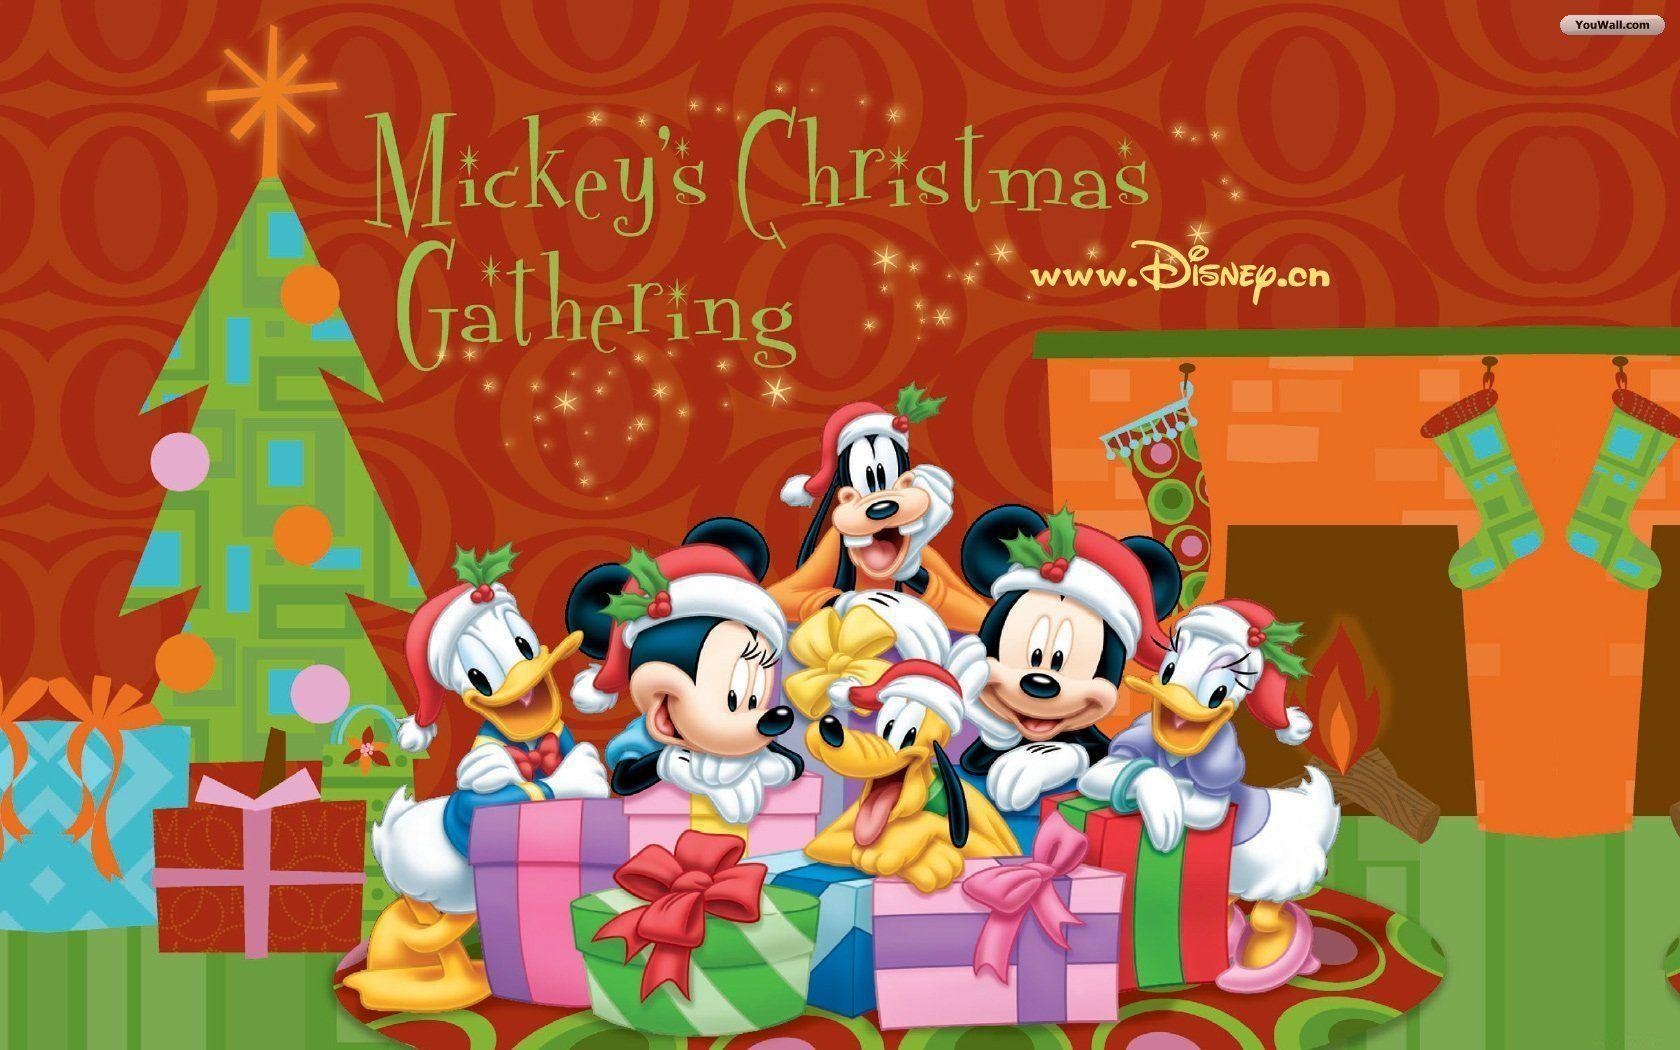 Disney Merry Christmas HD Wallpapers Wallpapers computer